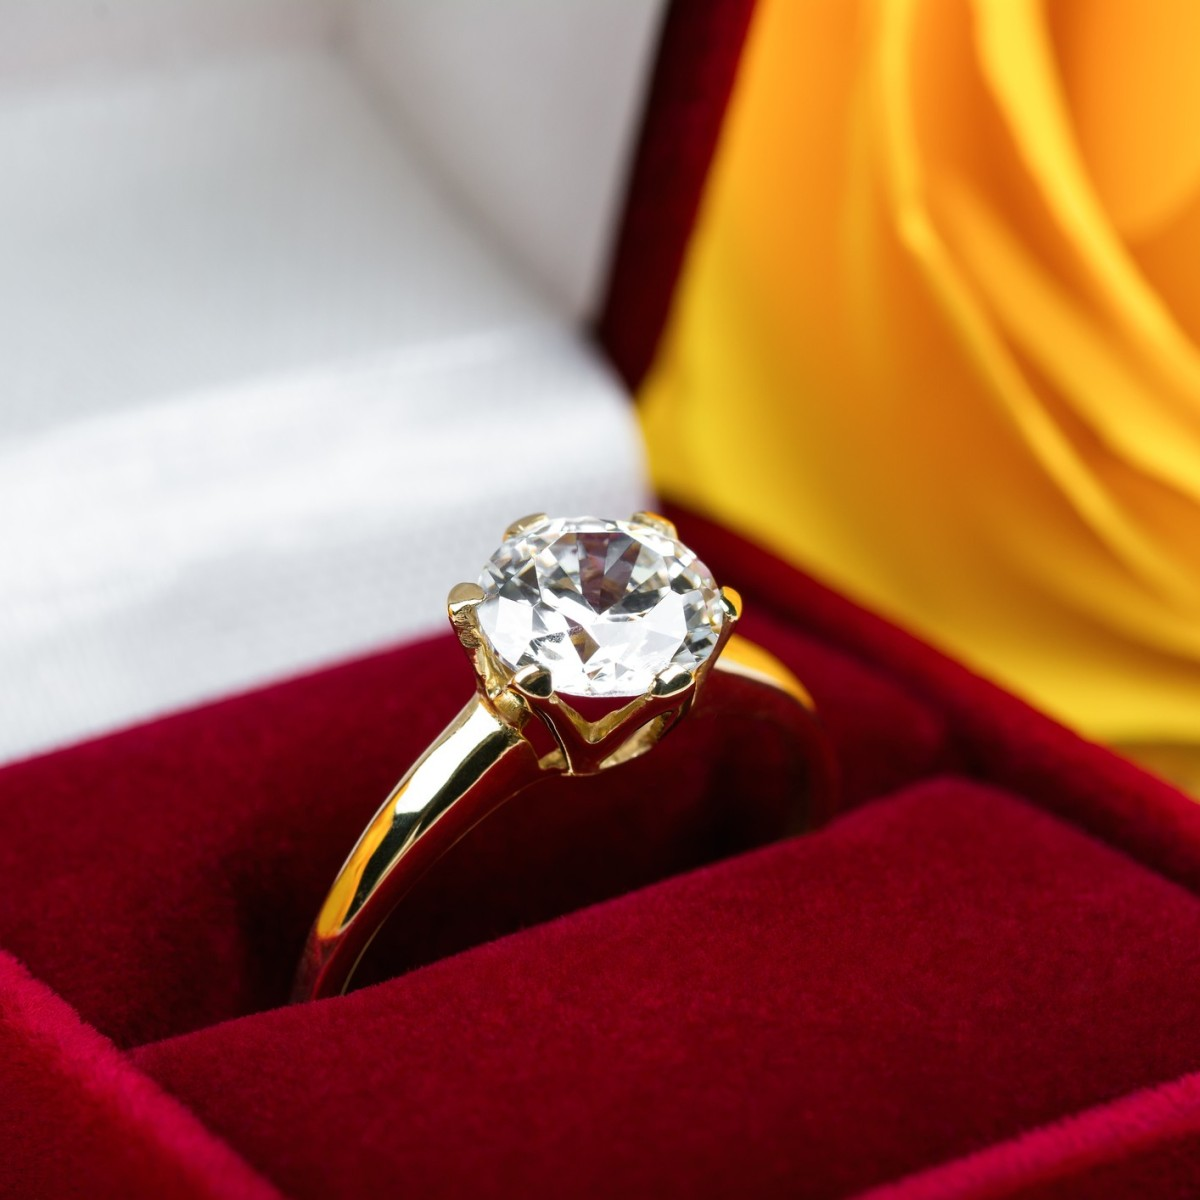 Buying a Wedding Ring With Bad Credit? | ThriftyFun